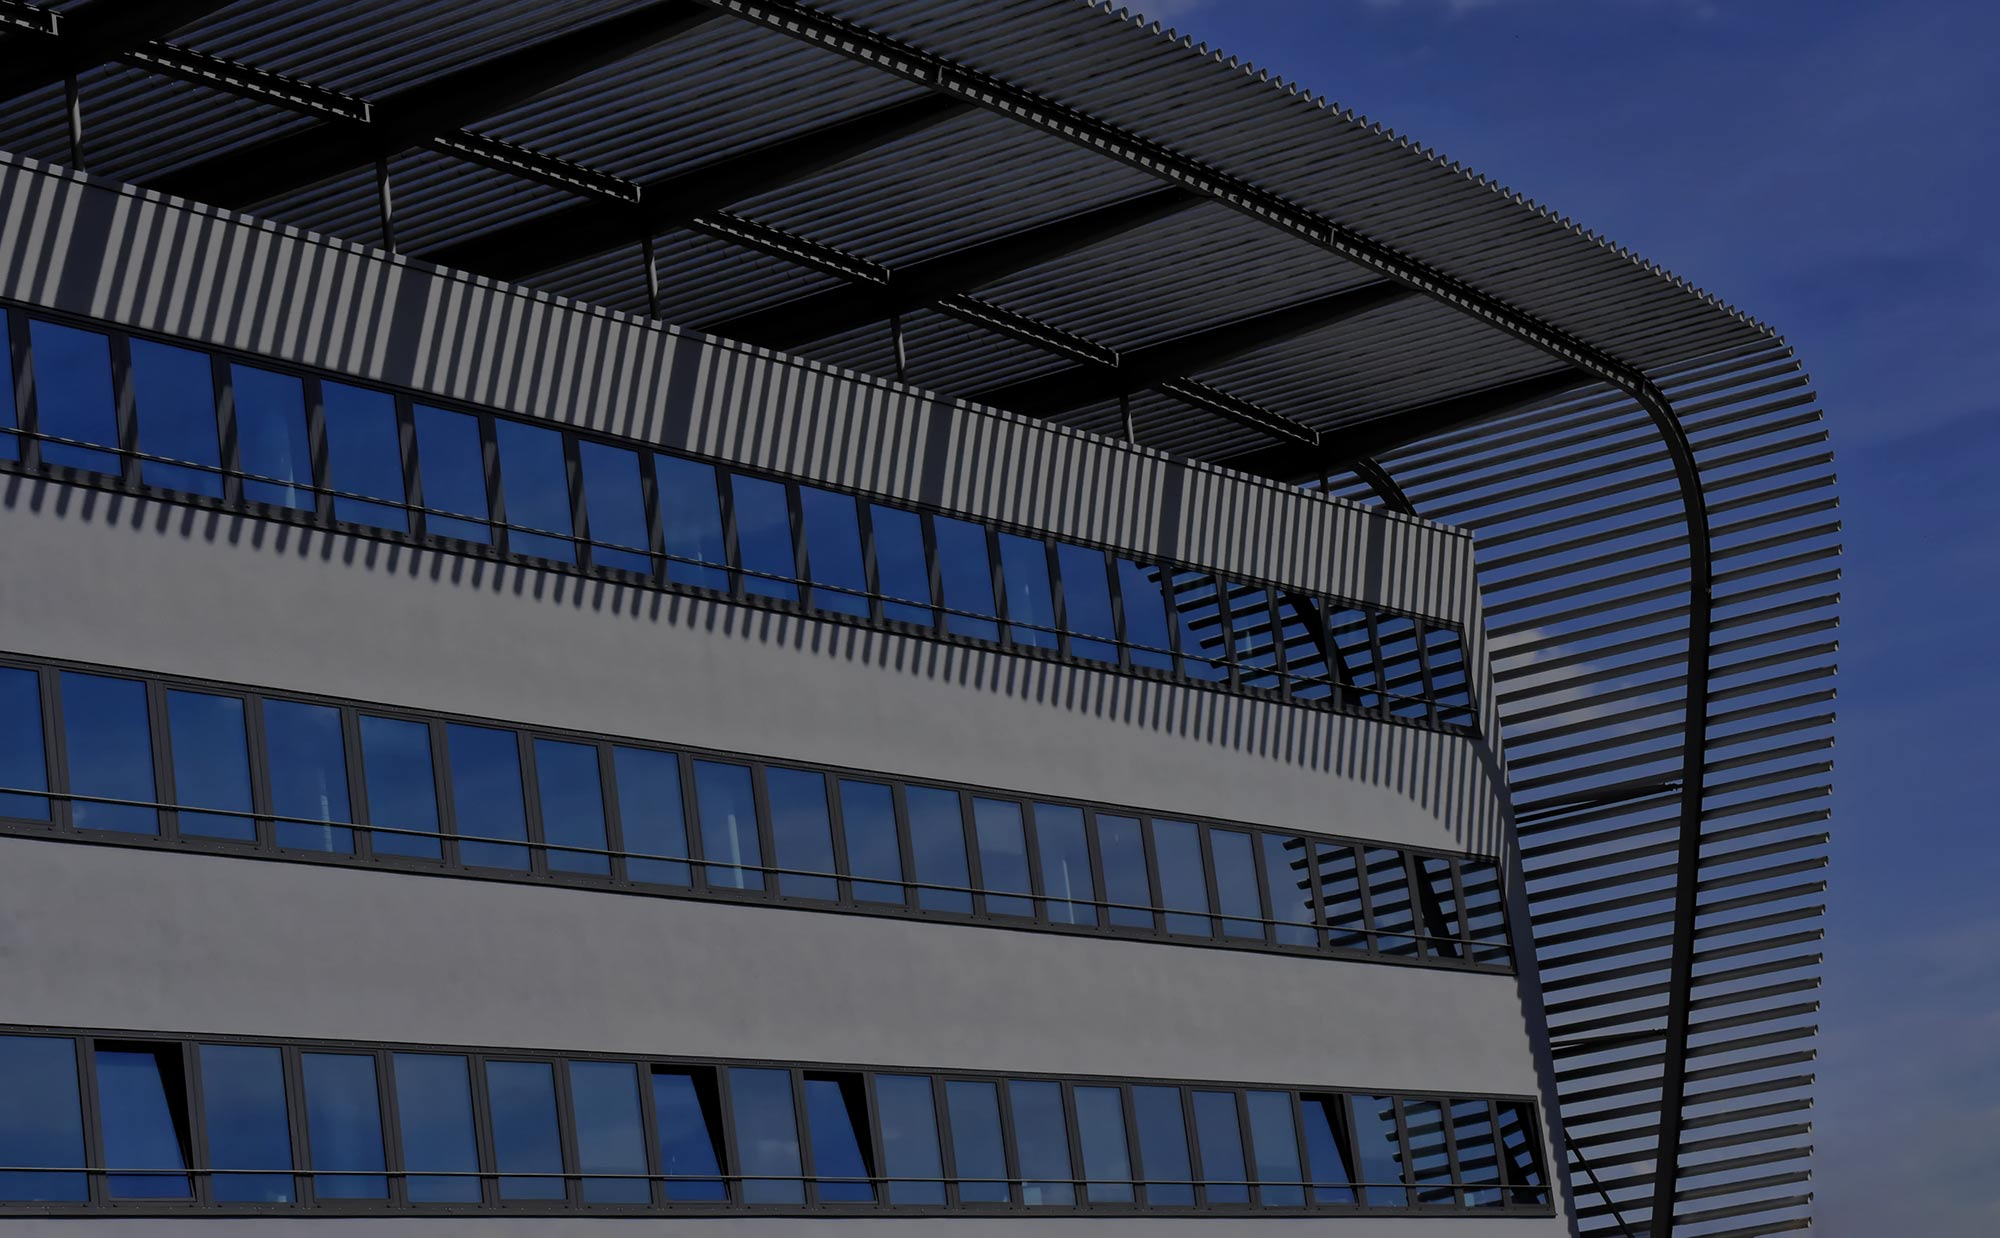 Architekt Paul Michel aus Frankfurt Header